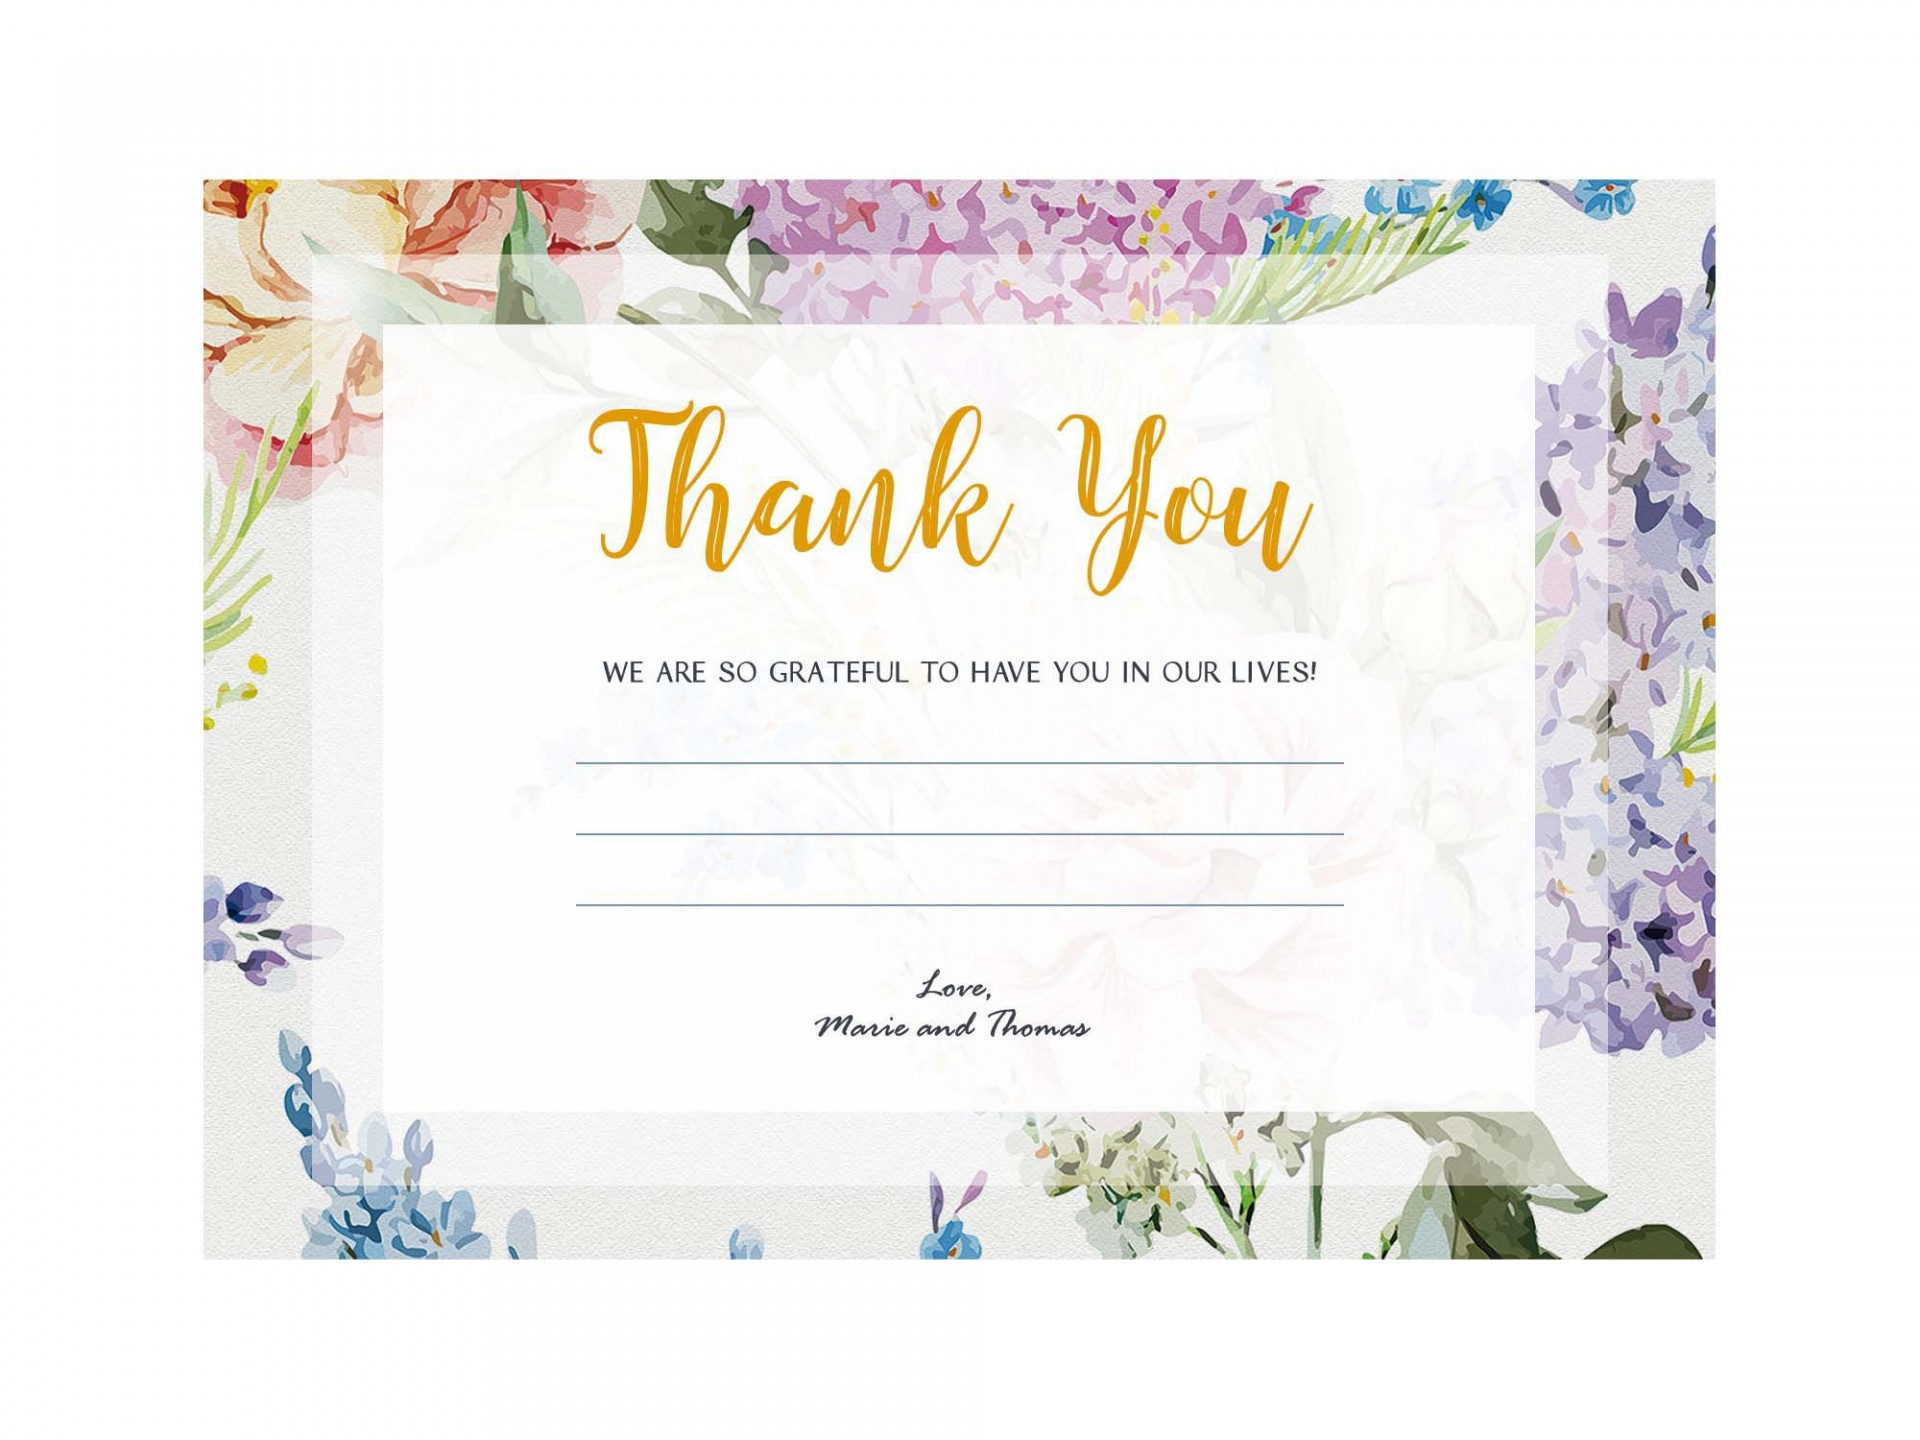 006 Archaicawful Wedding Thank You Card Template Psd Sample  Free1920